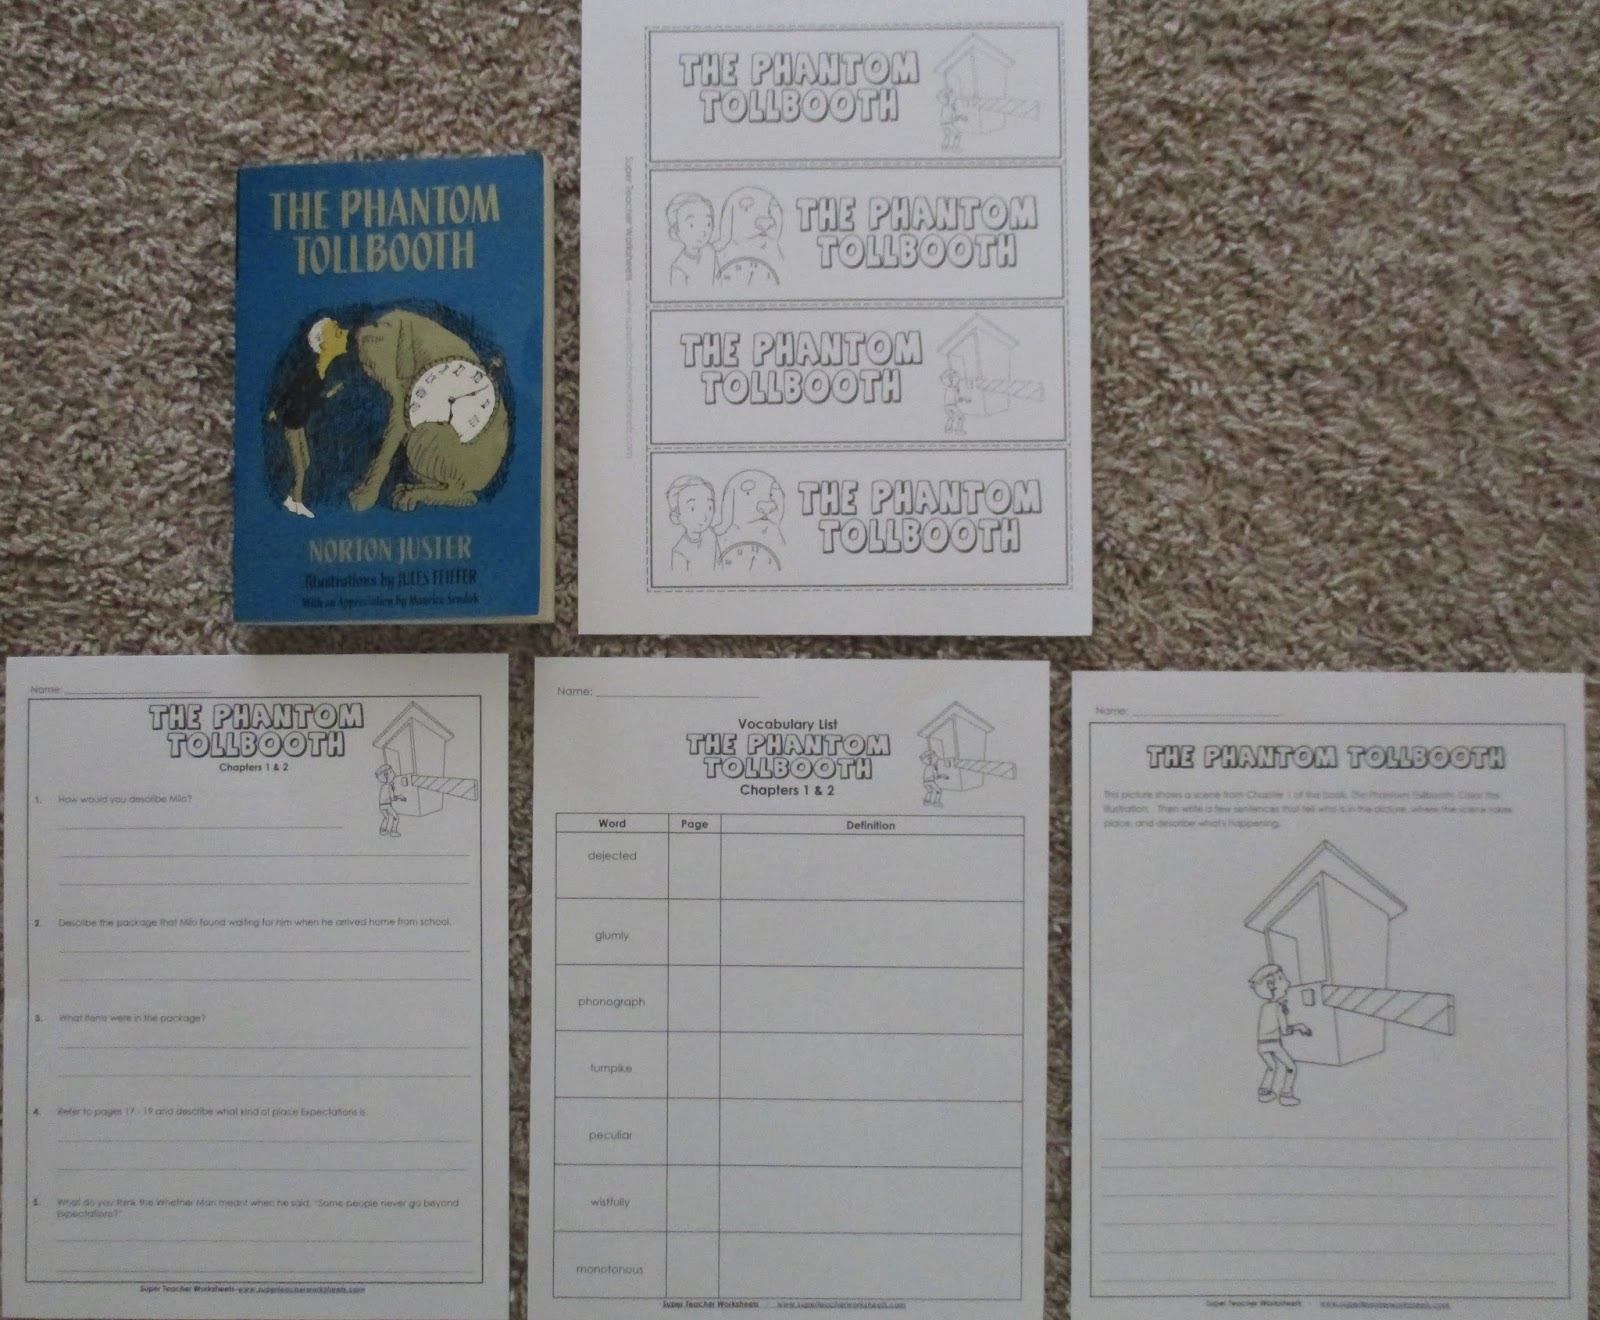 worksheet Phantom Tollbooth Worksheets a learning journey homeschool review crew super teacher worksheets occasionally i would print an illustrate scene summarize the chapters or question leader worksheet to work on specific compre